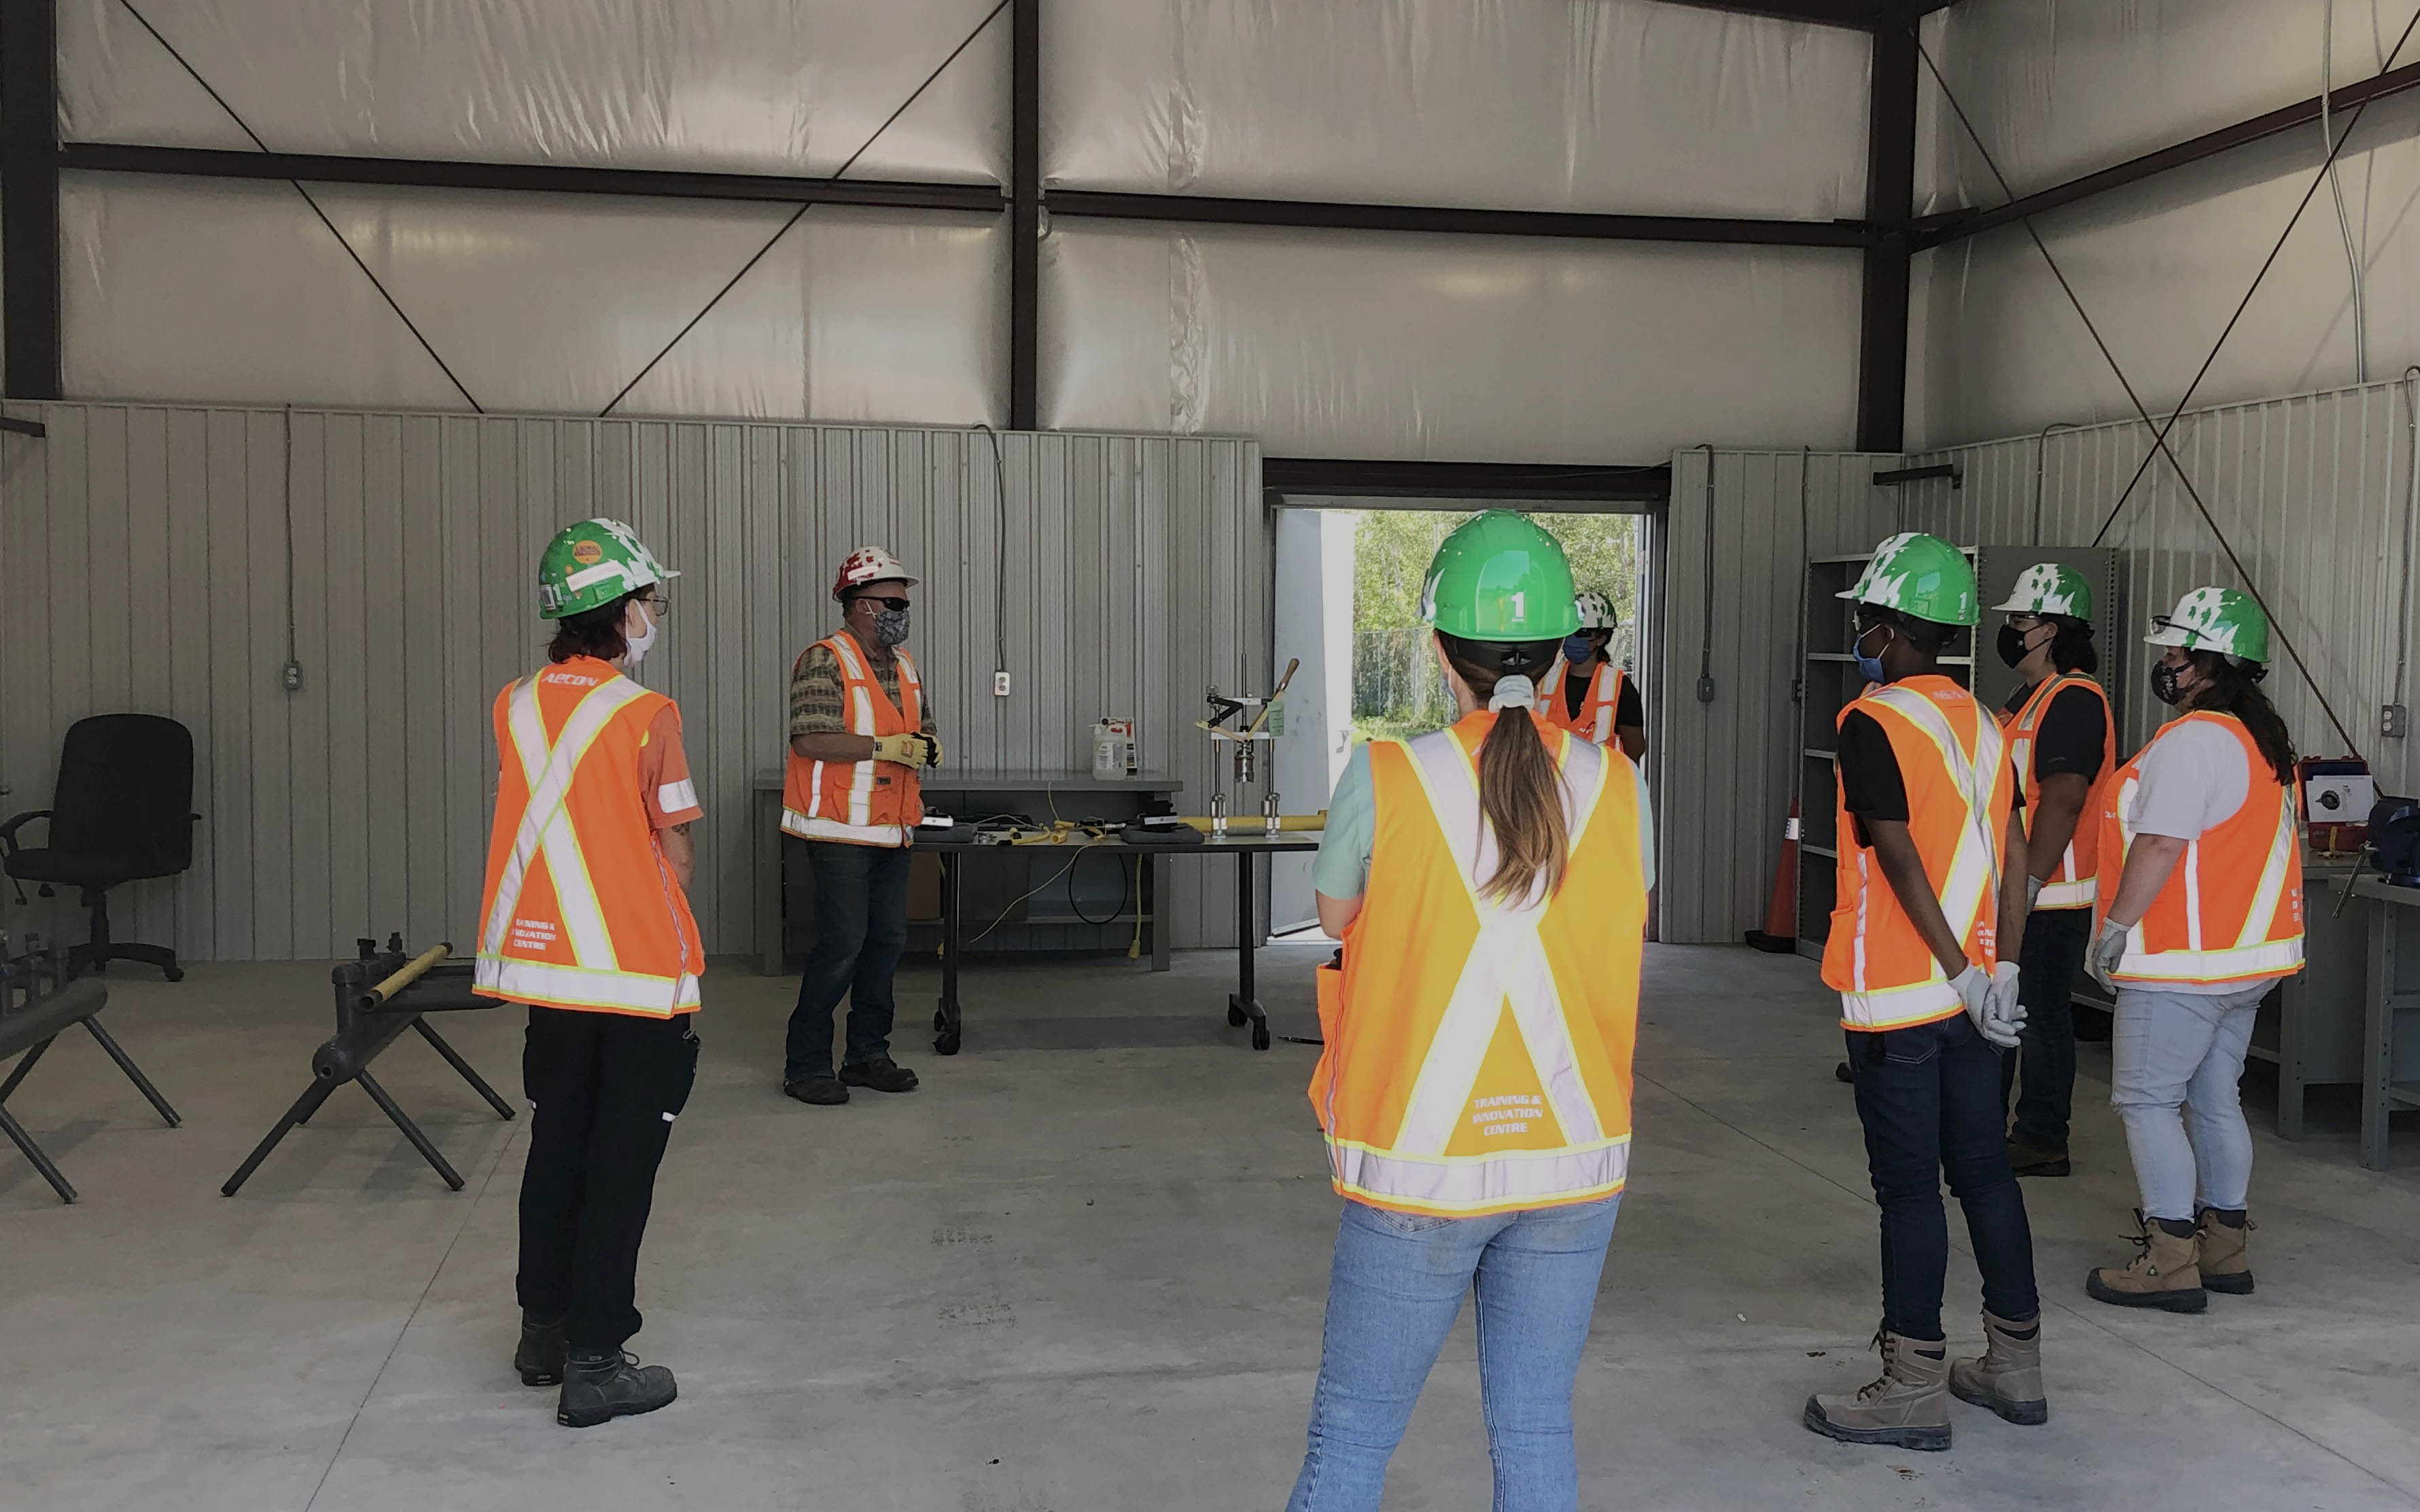 Aecon staff wearing safety gear and PPE on a site